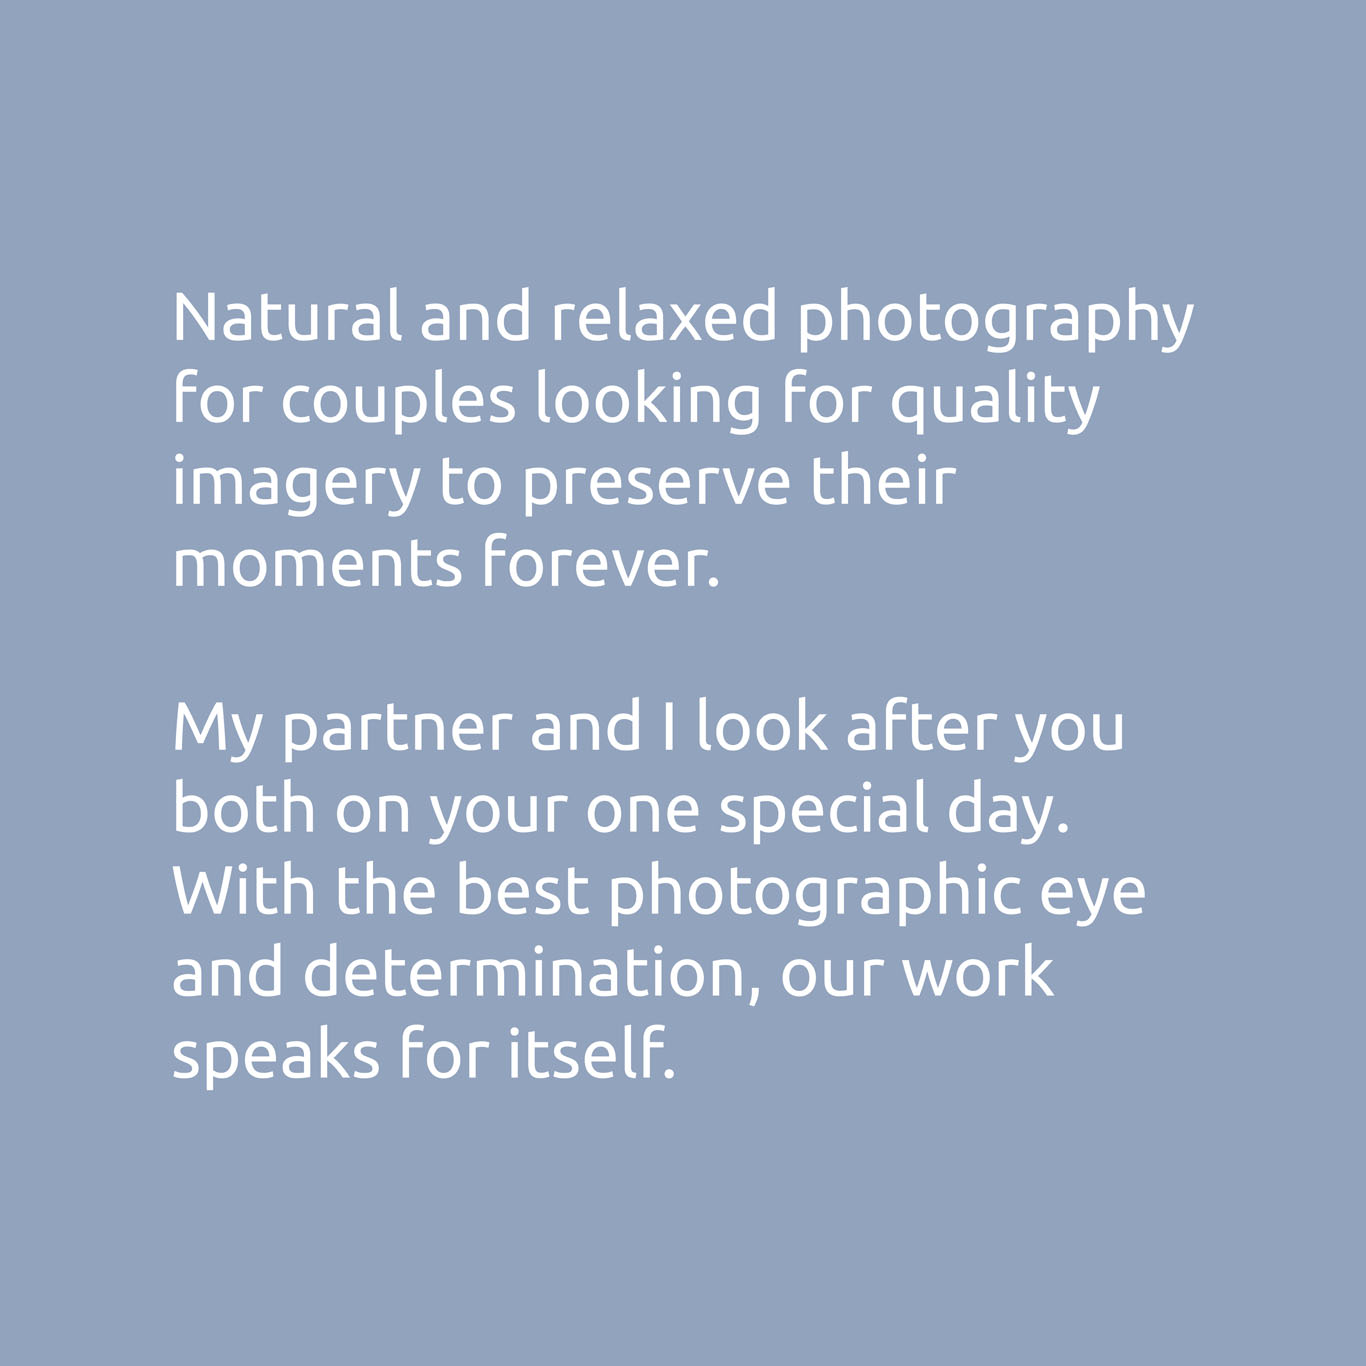 Natural and relaxed photography for couples looking for quality imagery to preserve their moments forever.   My partner and I look after you both on your one special day. With the best photographic eye and determination, our work speaks for itself.